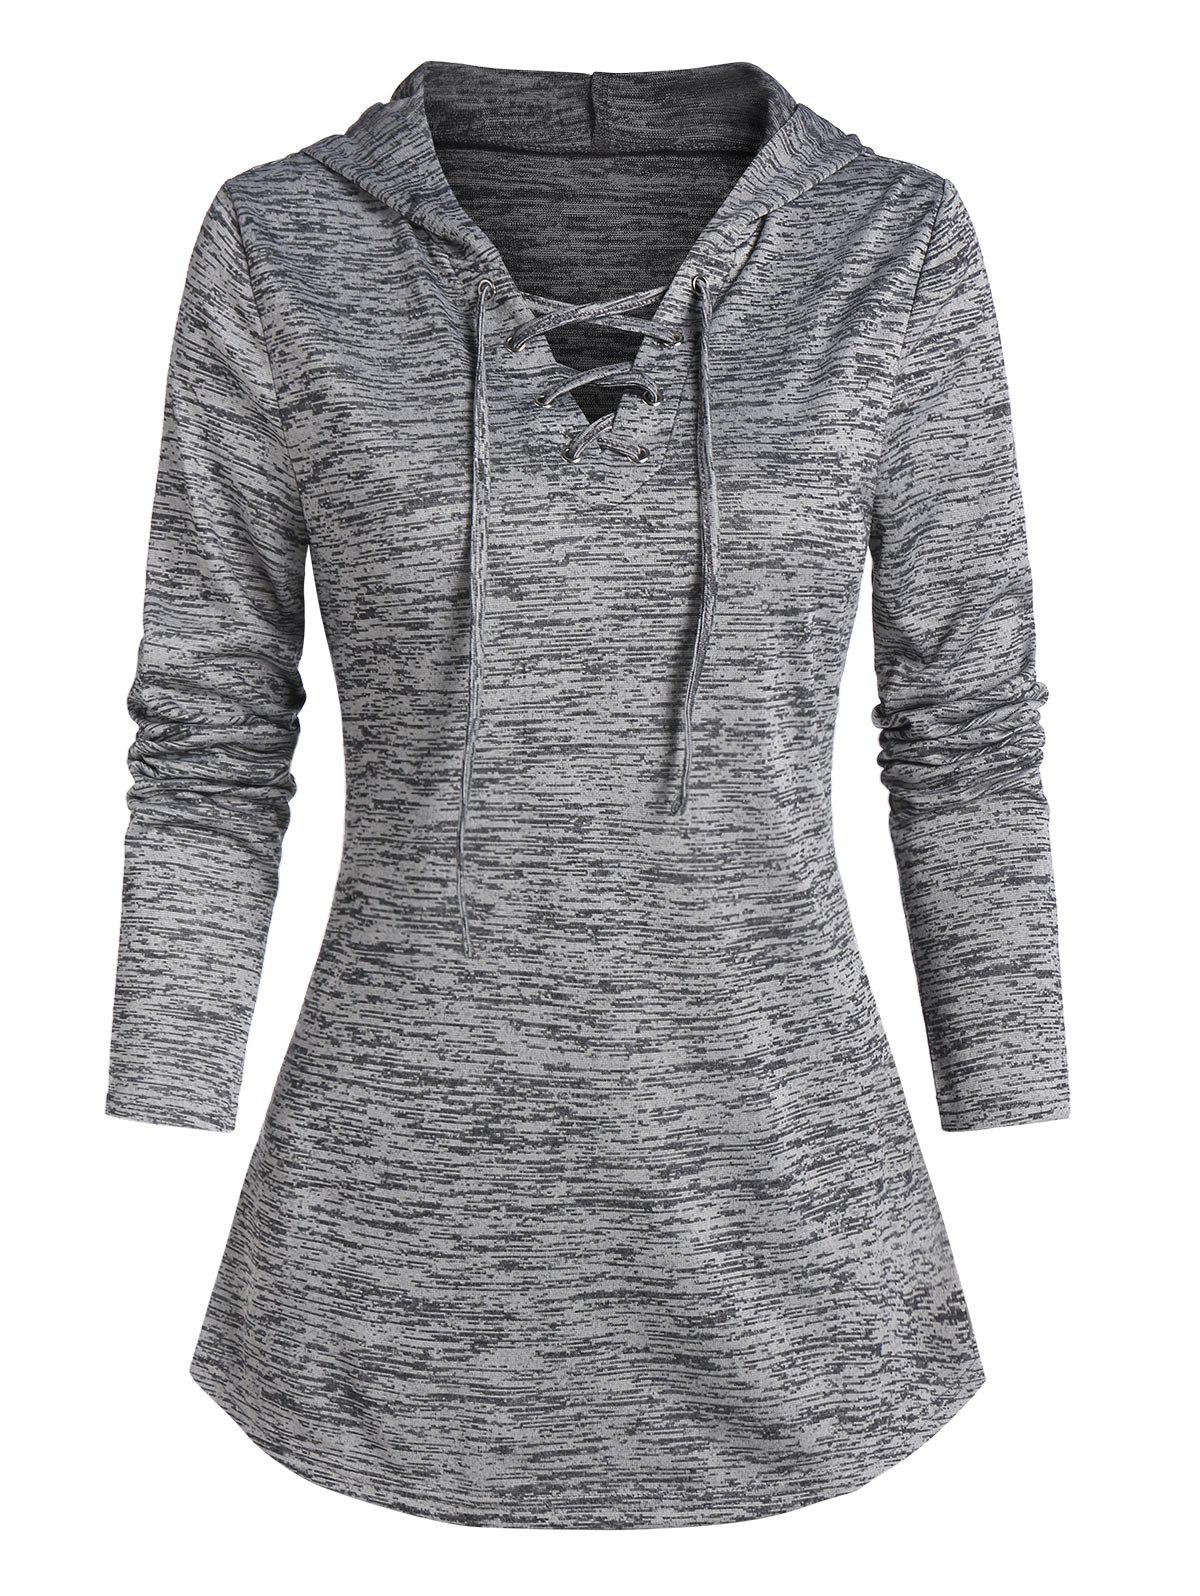 Space Dye Print Lace-up Curved Hem Hoodie - ASH GRAY XL